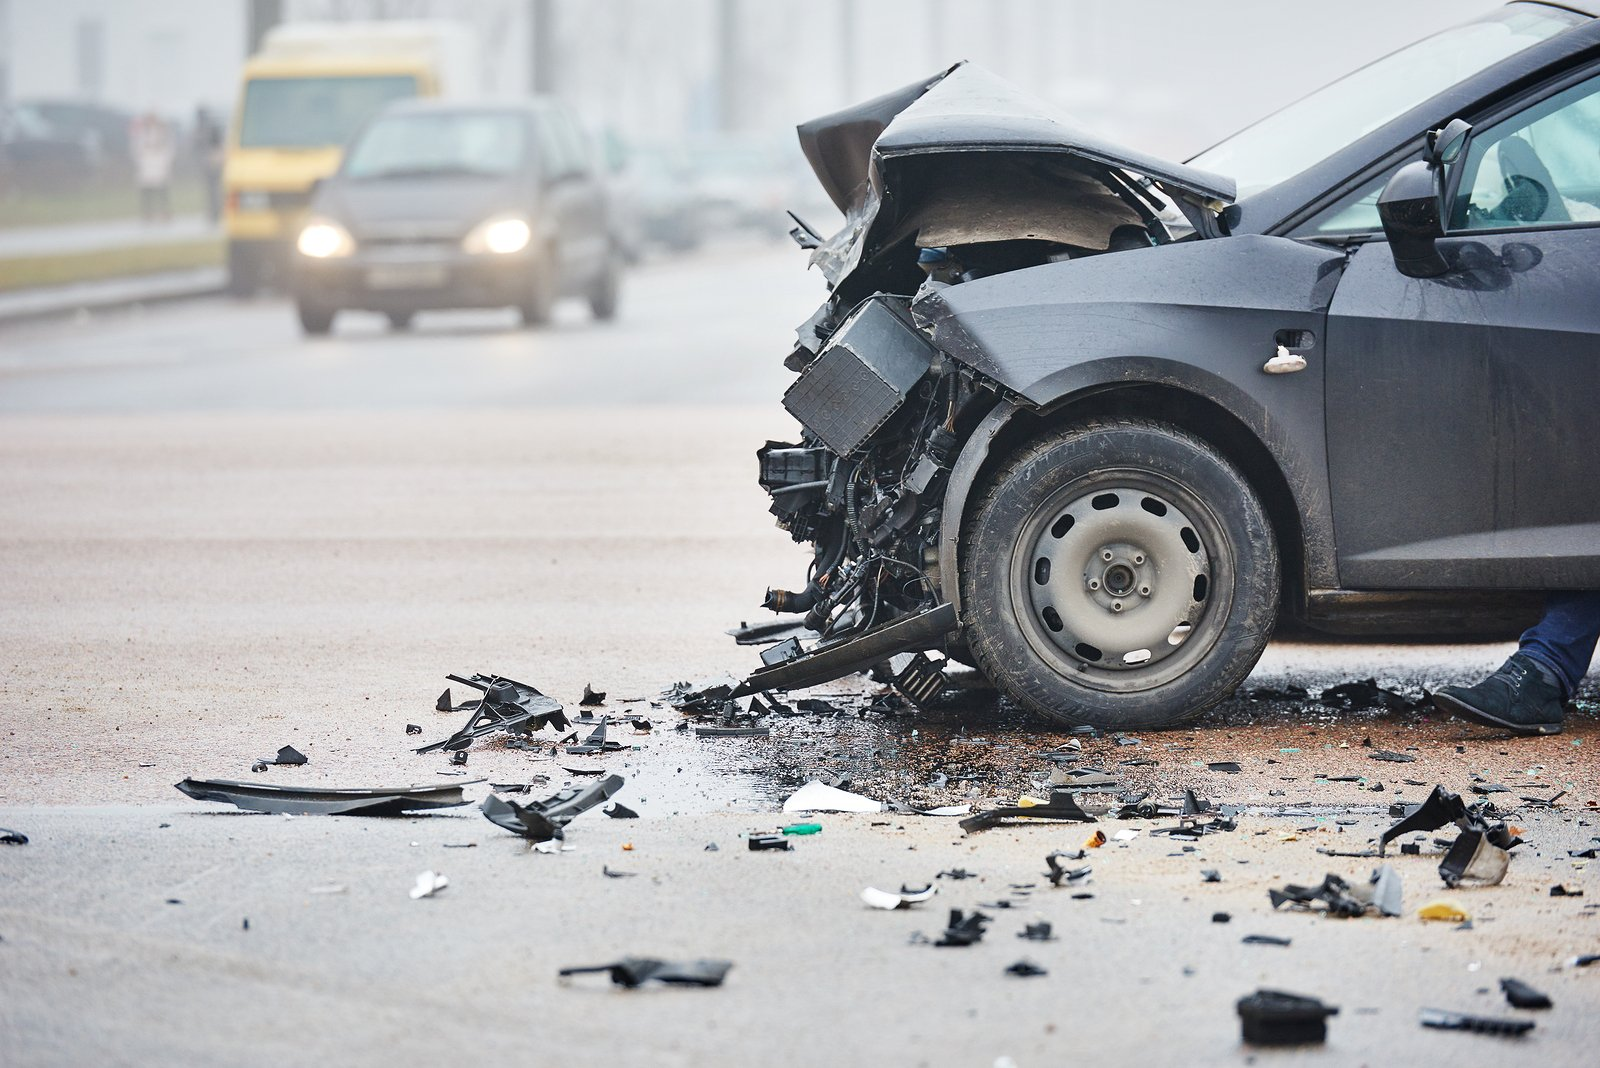 Spaulding Injury Law Recovers $75,000 for Accident Victim in Less Than 4 Months